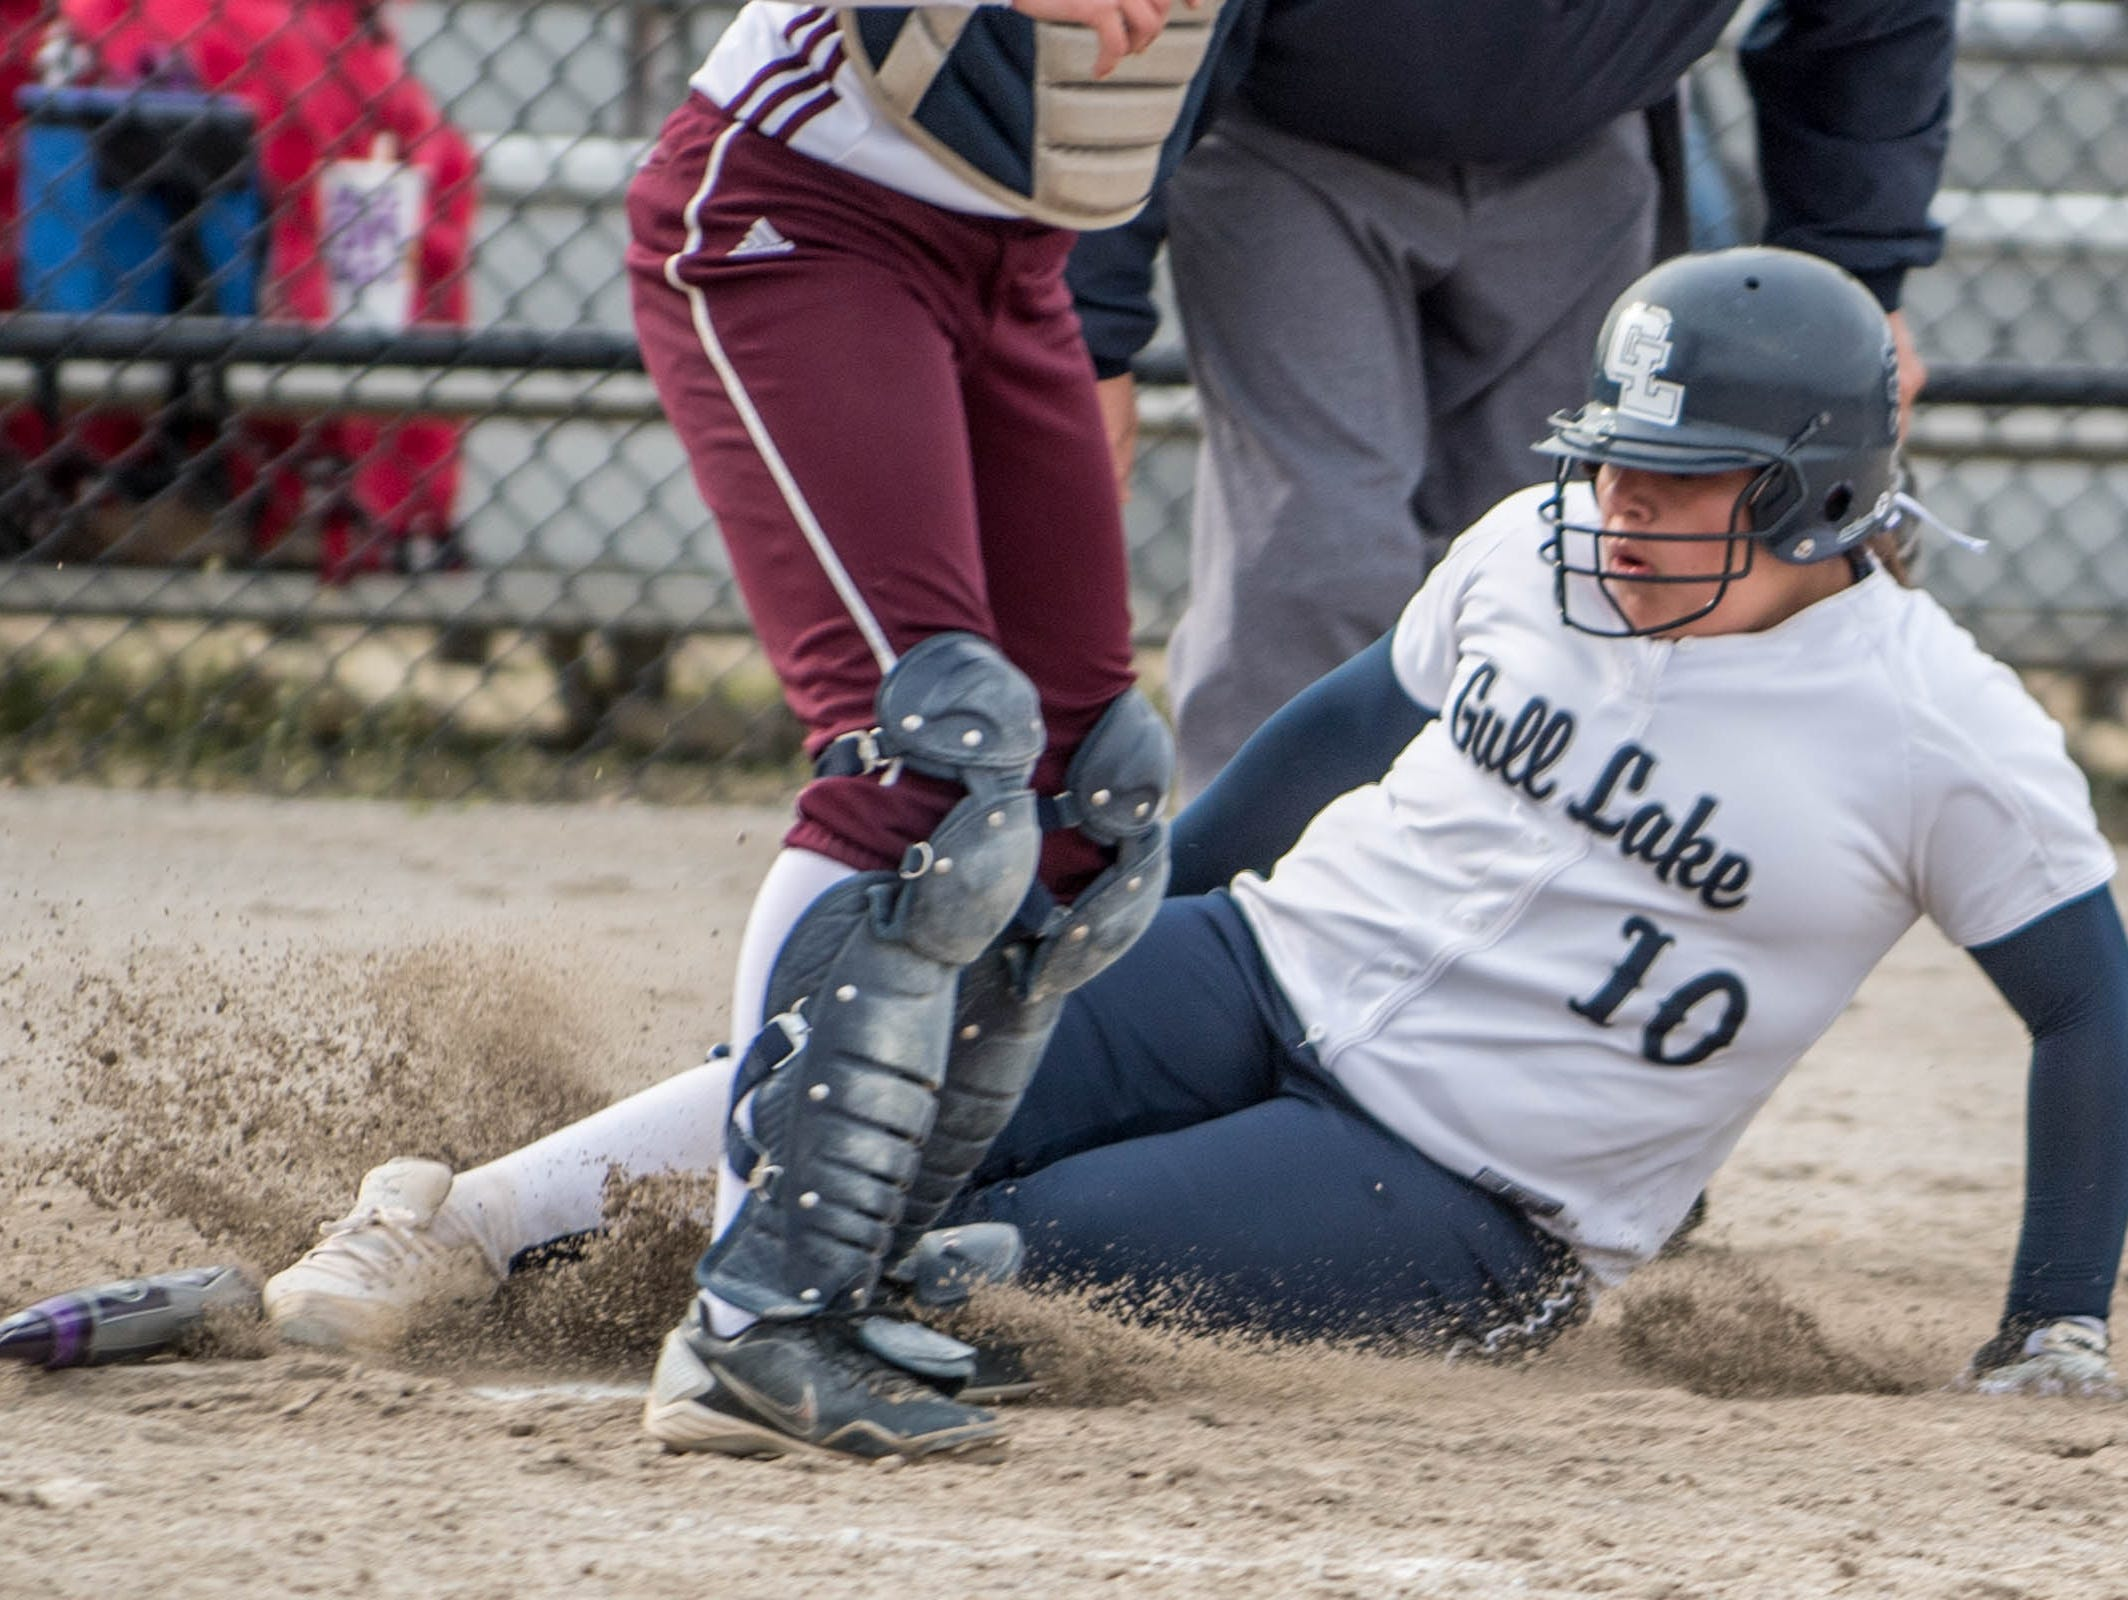 Gull Lake's Shelby Martell slides into home plate during the Gull Lake Invitational on Saturday.